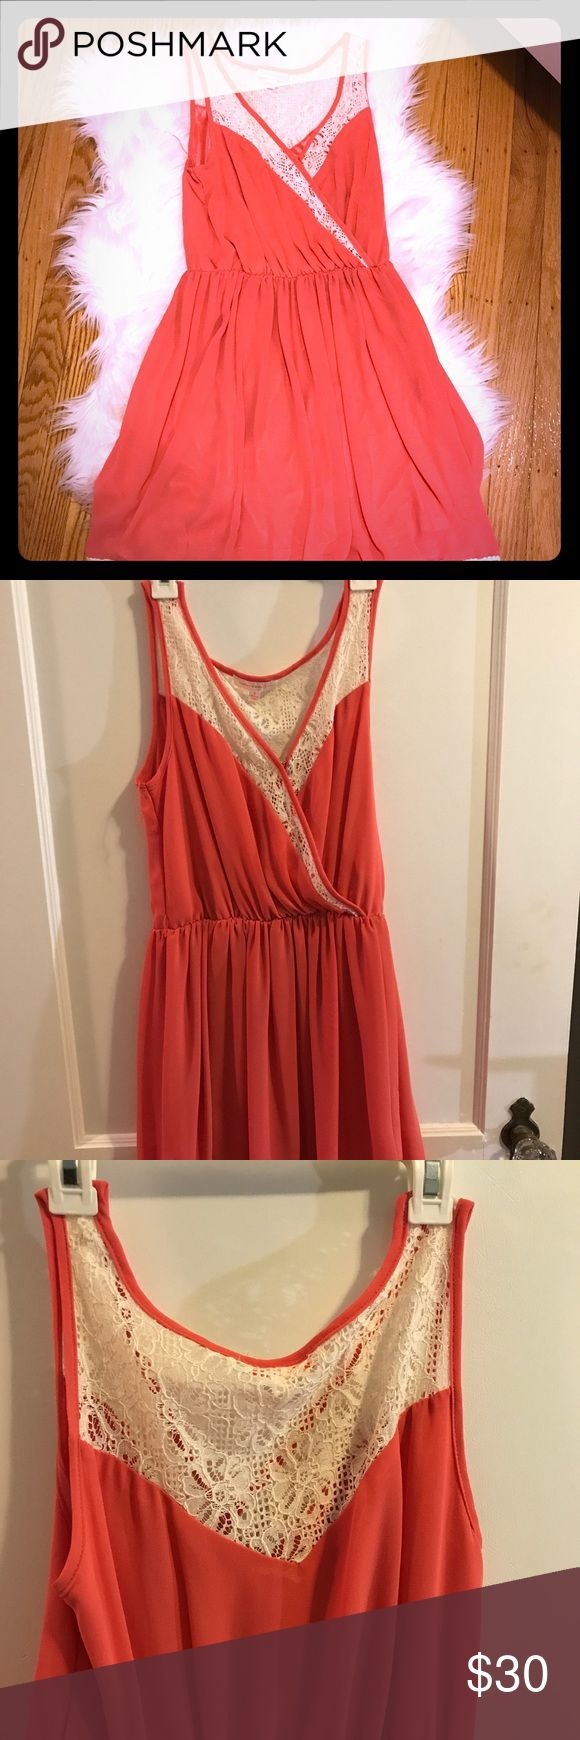 A coral lace dress A coral dress with lace detailing on the bottoms, back and top Dresses Midi